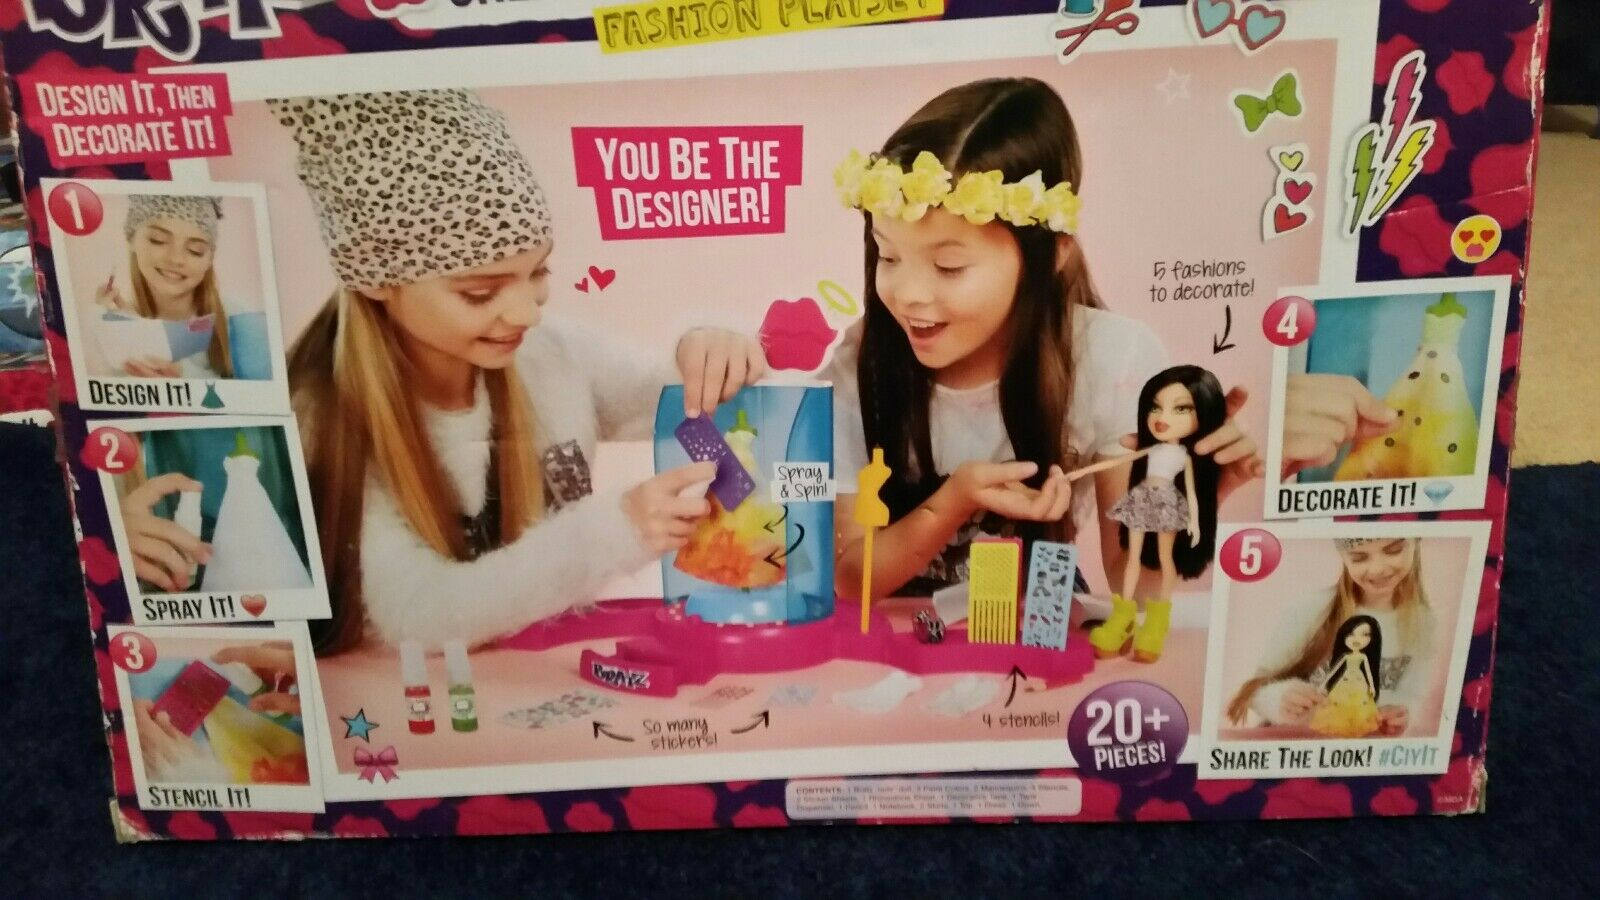 BRATZ DOLLS CREATE IT YOURSELF FASHION PLAYSET PLAYSET PLAYSET 20+ PIECES AND JADE DOLL INCLUDED 3c06a3